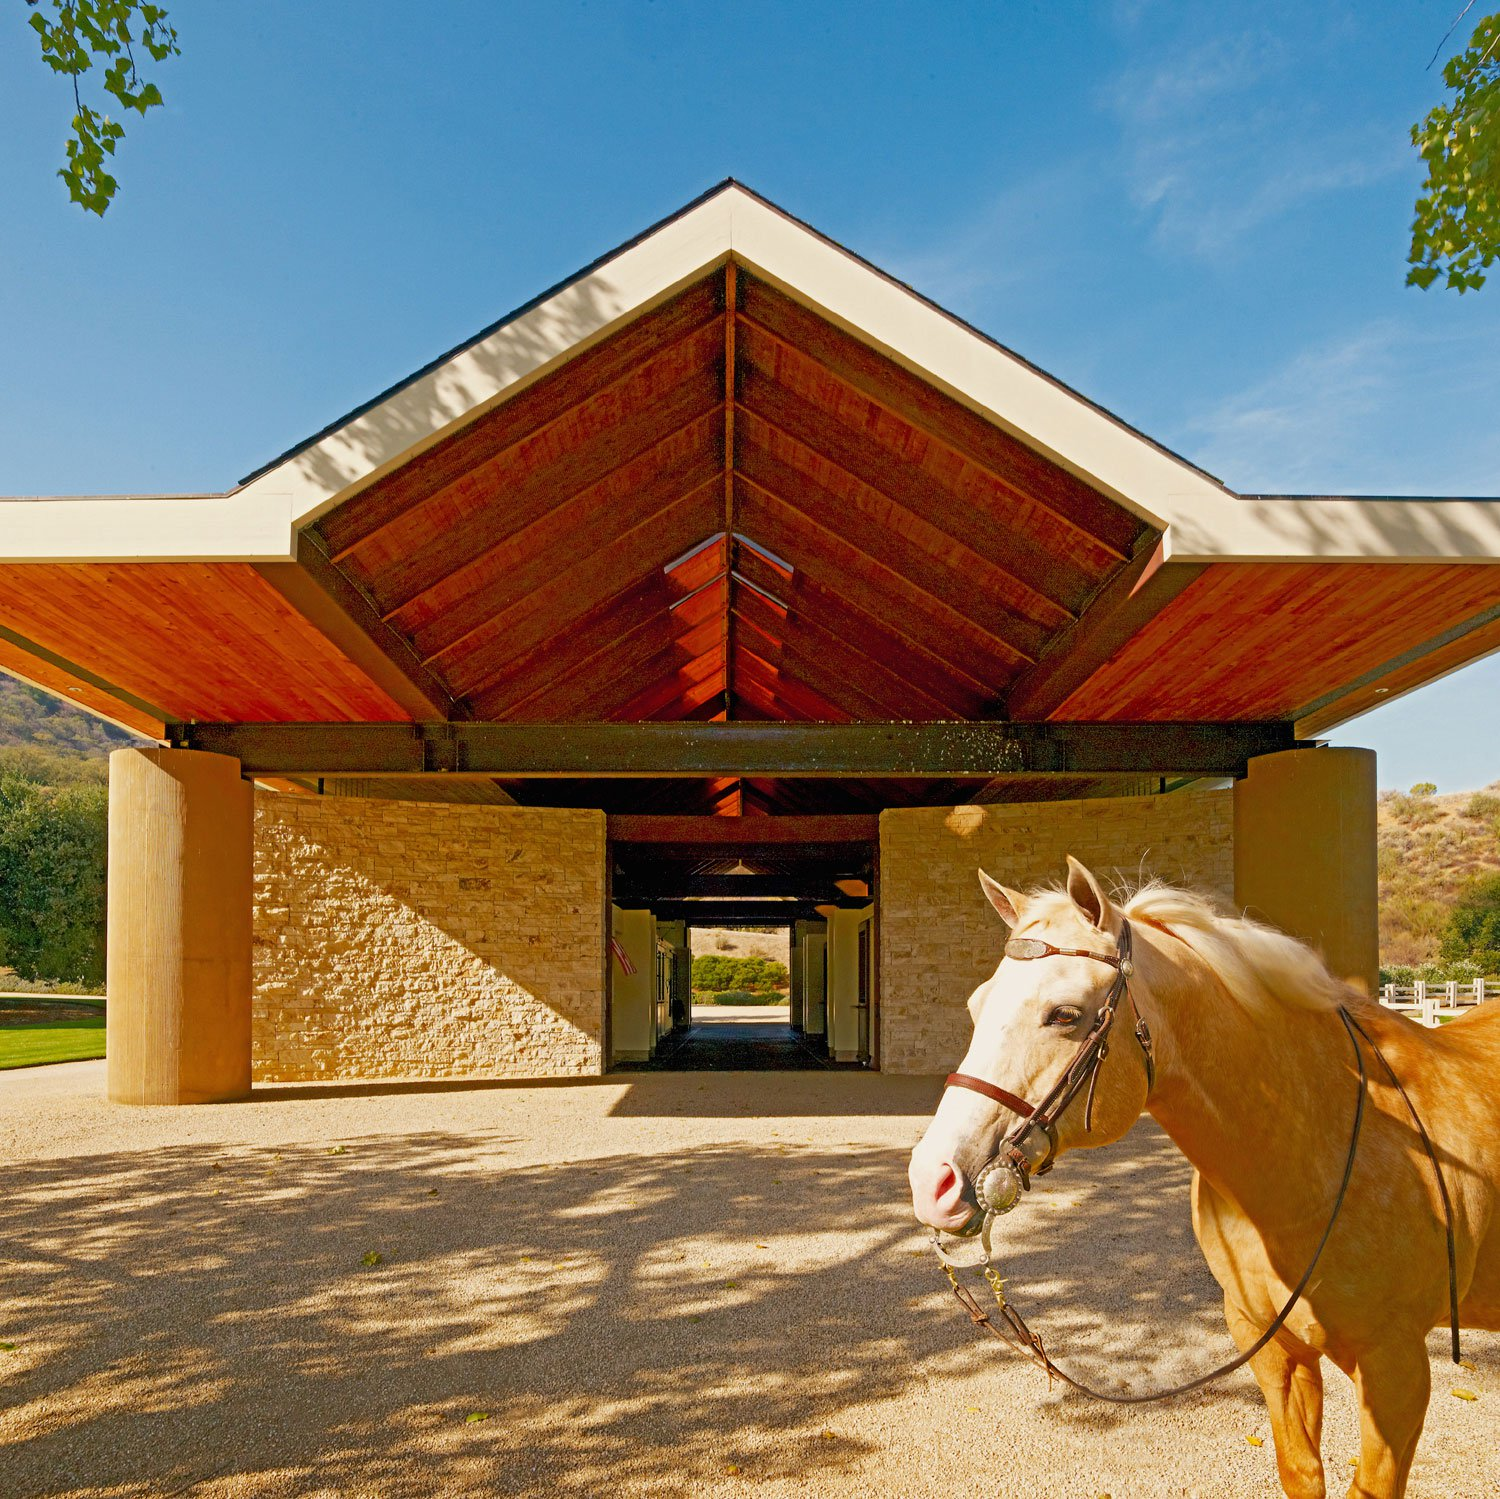 The masterful creation of architect Ugo Sap, the 10,000-acre Stone Canyon Ranch was designed to provide stunning views, maximum seclusion, and communion with nature.